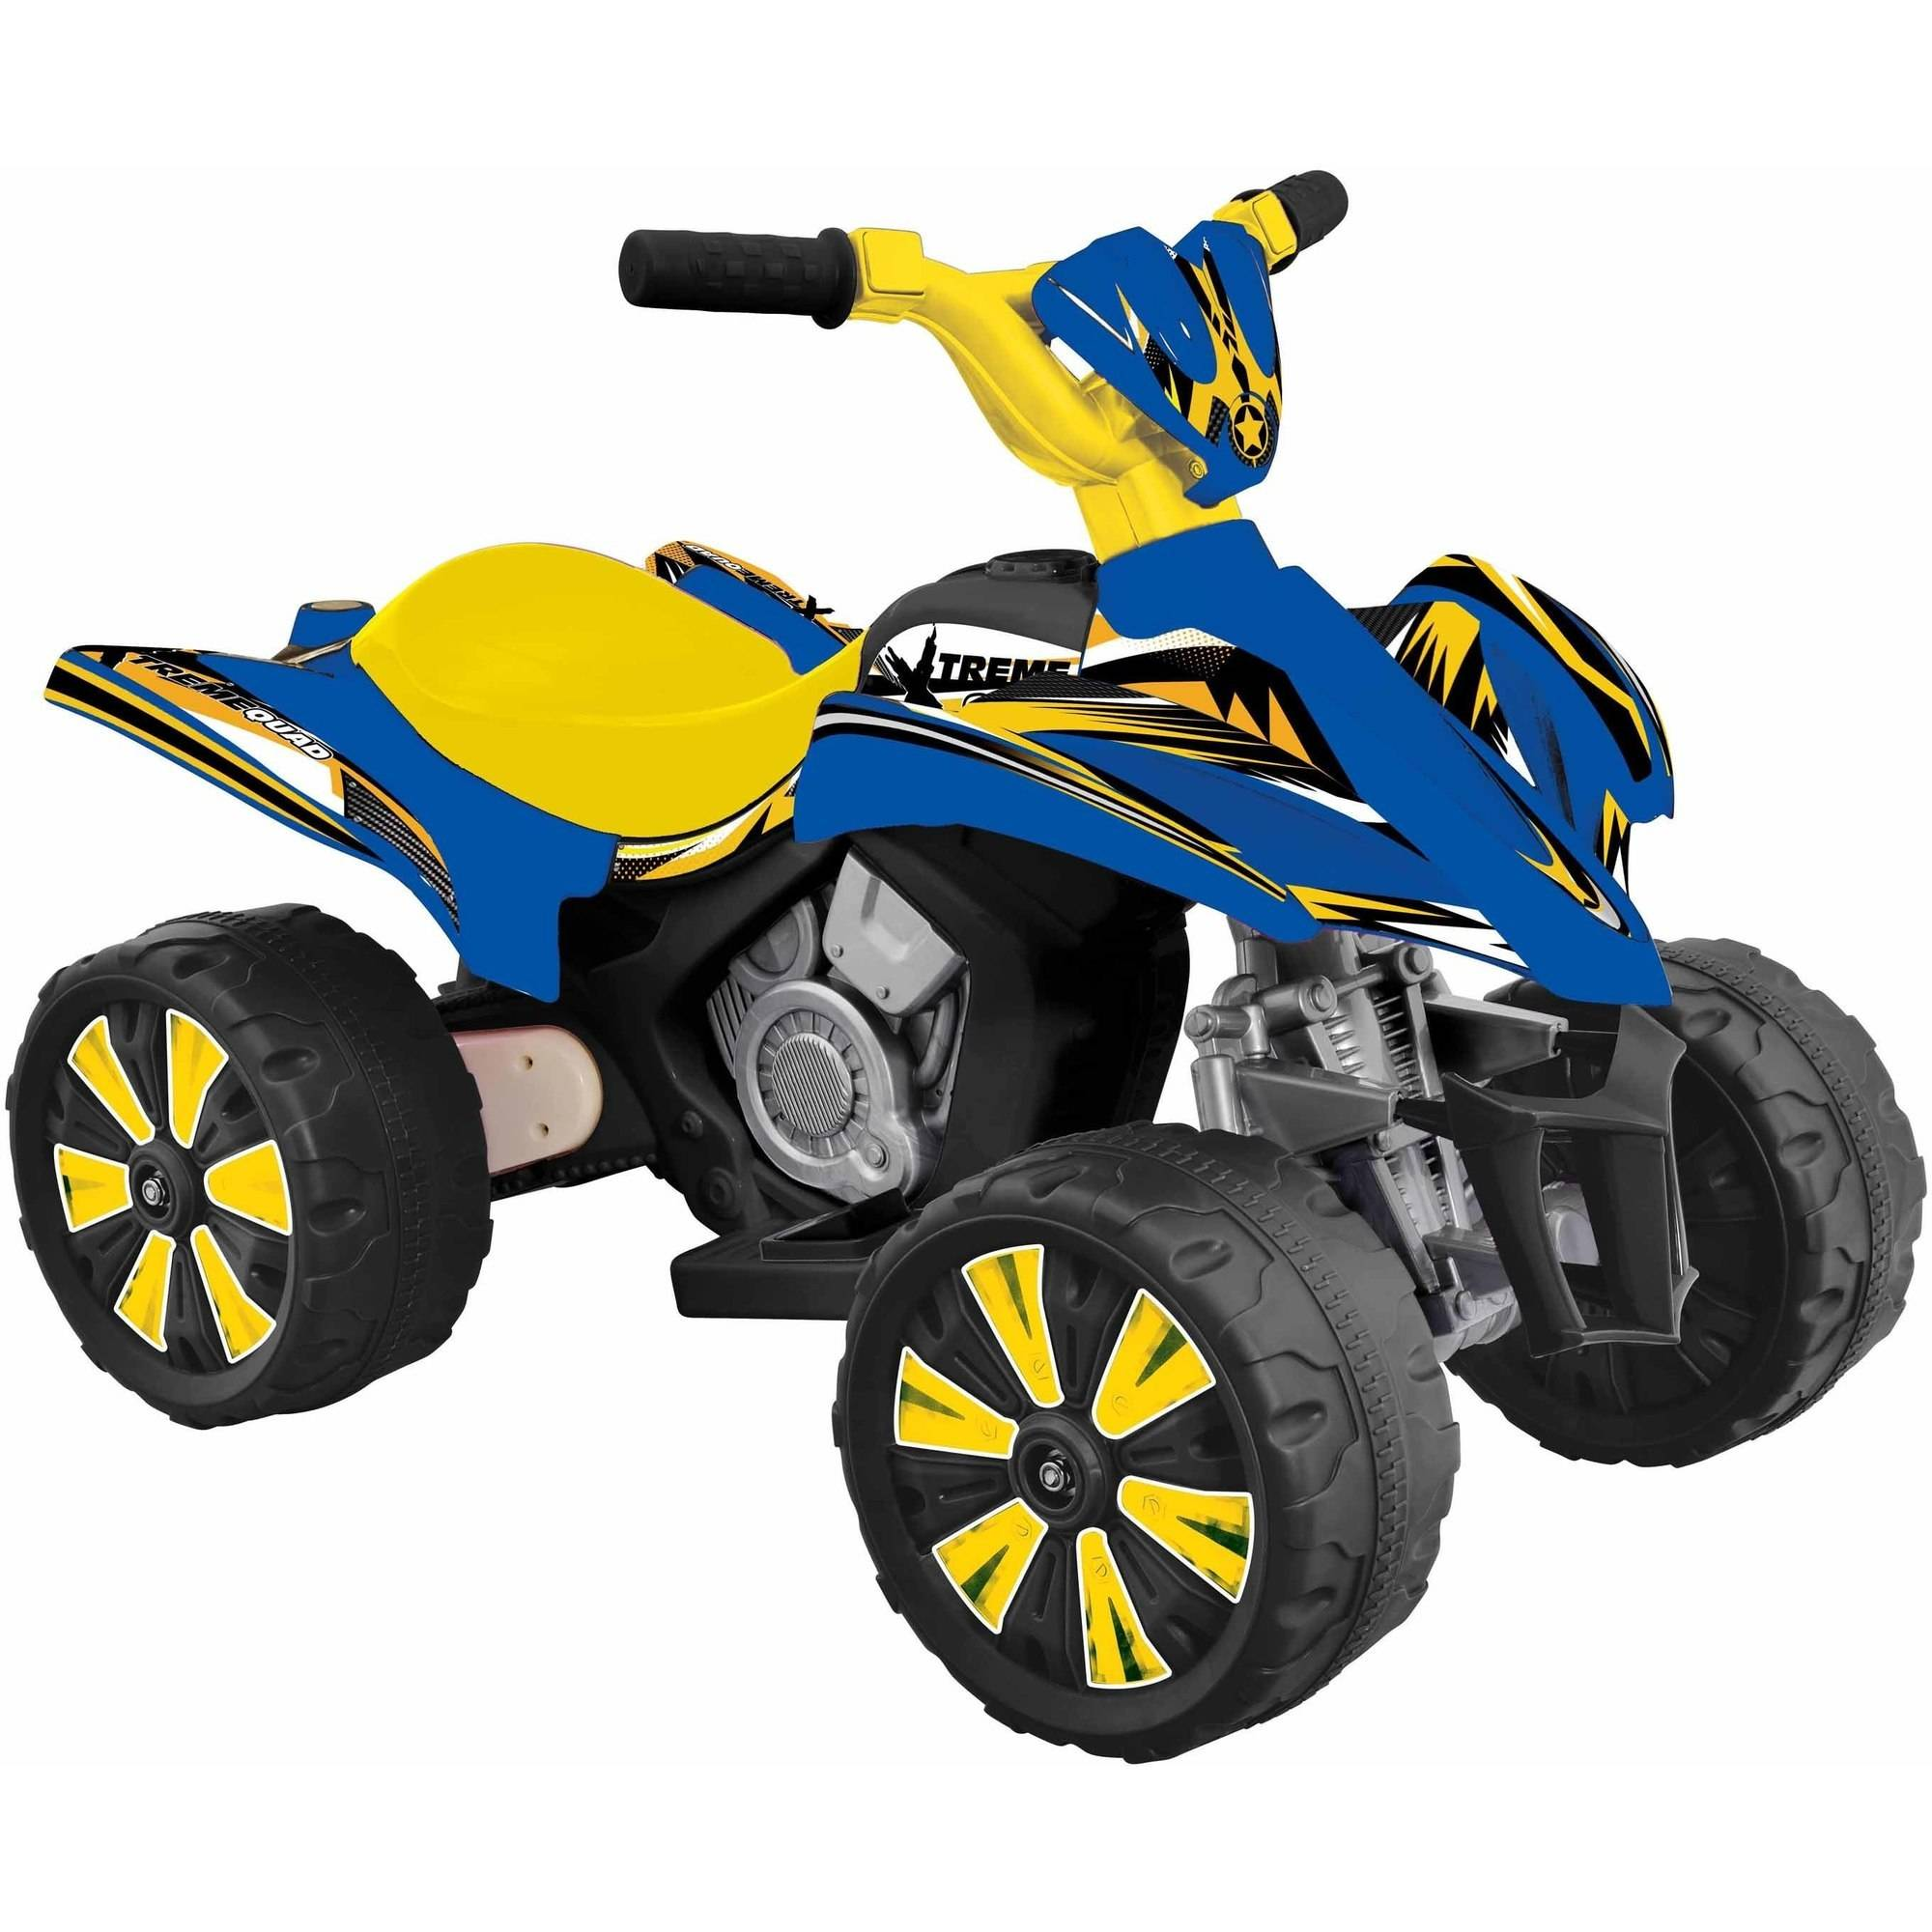 Fun Creation 6V Xtreme Quad Ride-On, Blue and Yellow